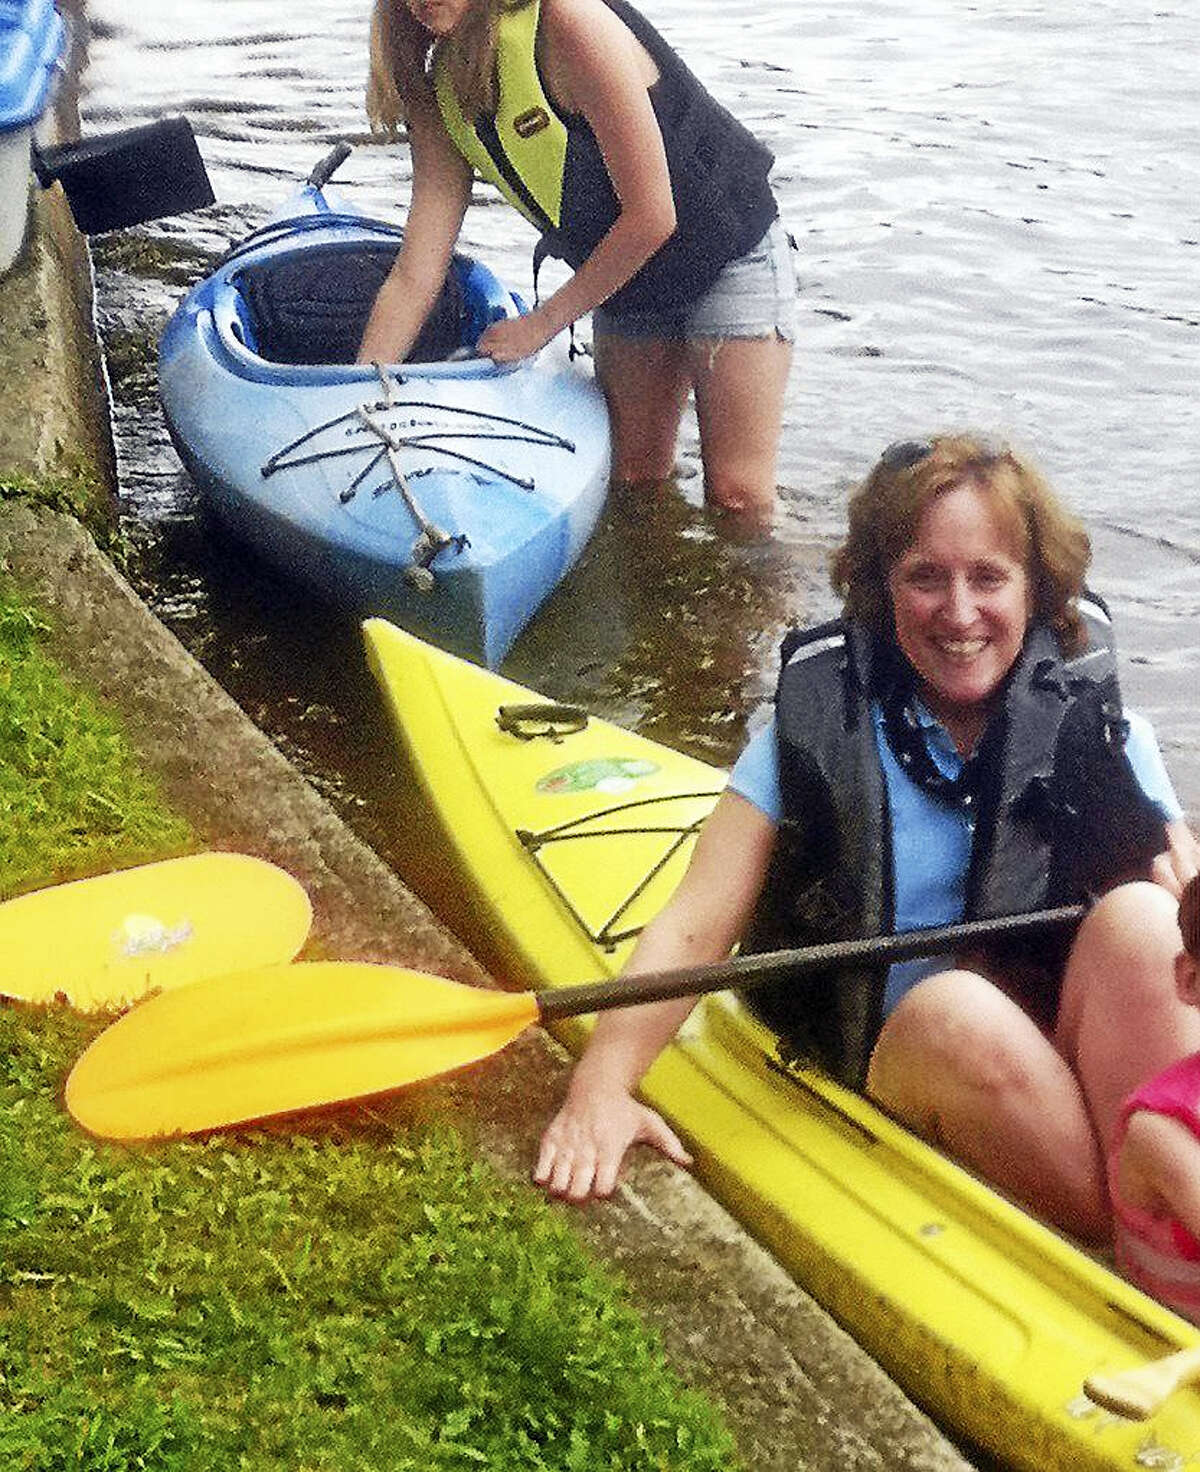 Kayaking in Connecticut means washing your vessel before launching it